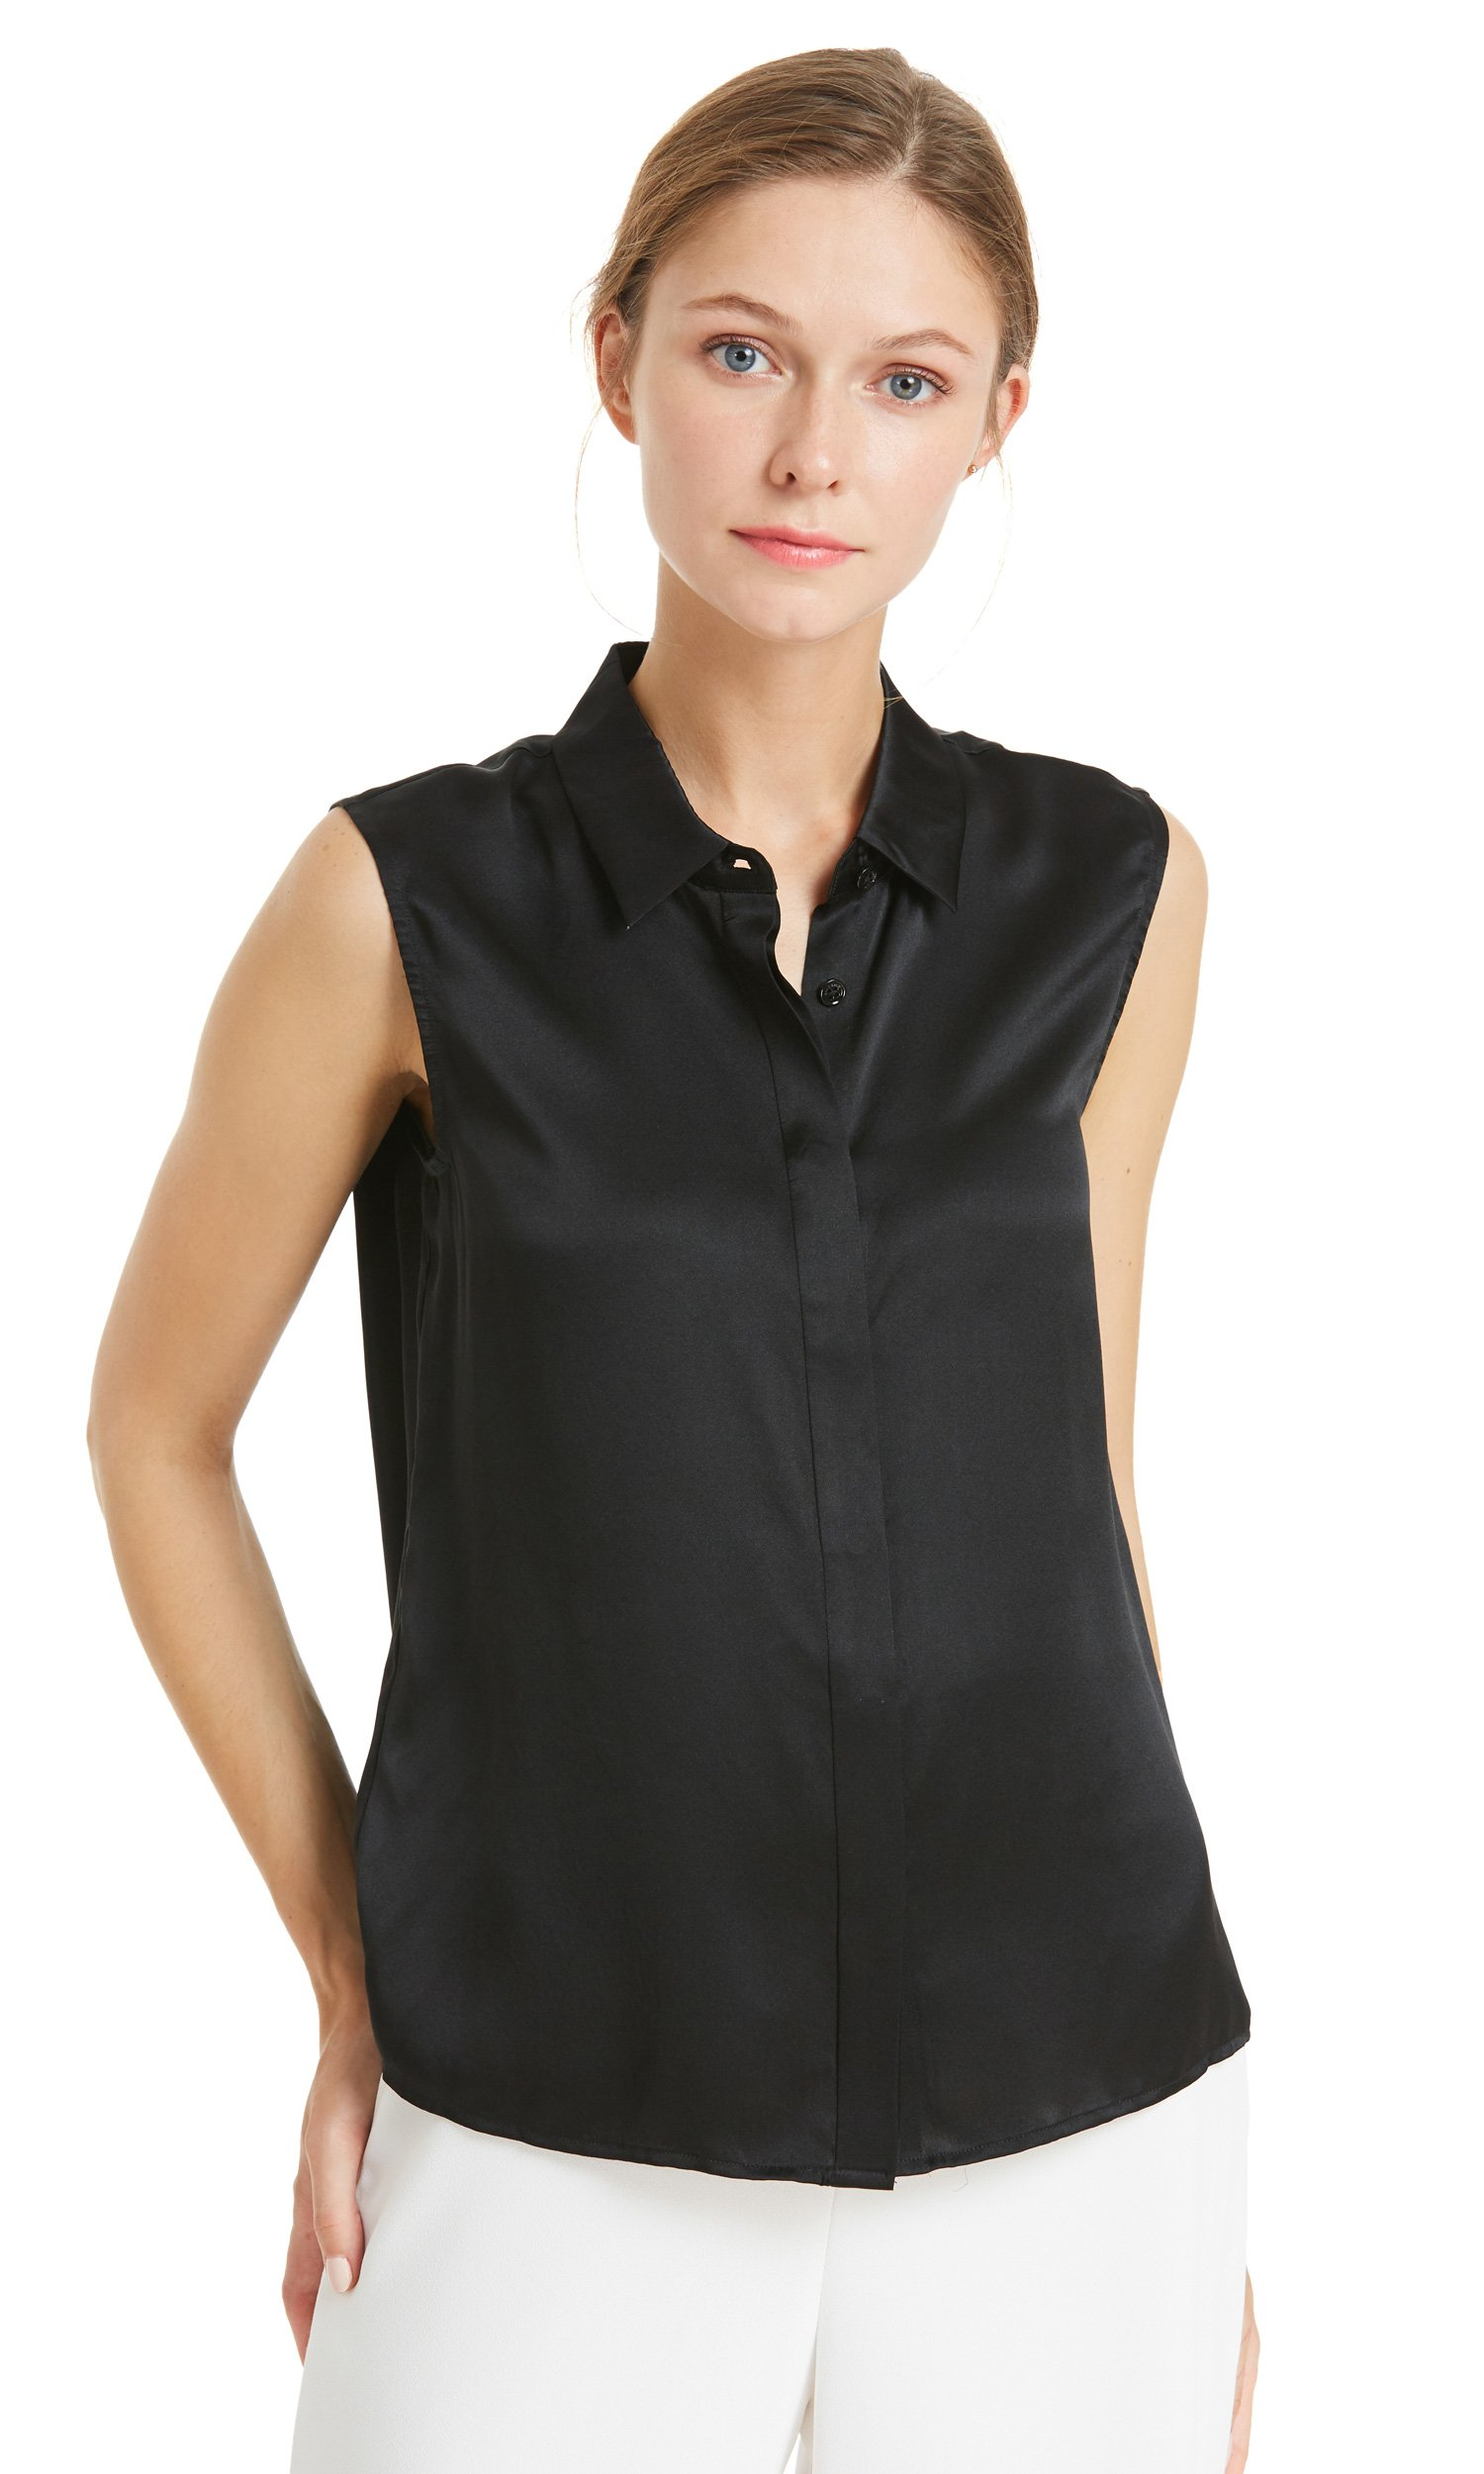 LILYSILK Silk Vest Top for Women Pure Mulberry 22MM Office Basic Style Soft Ladies Tanks Black S/4-6